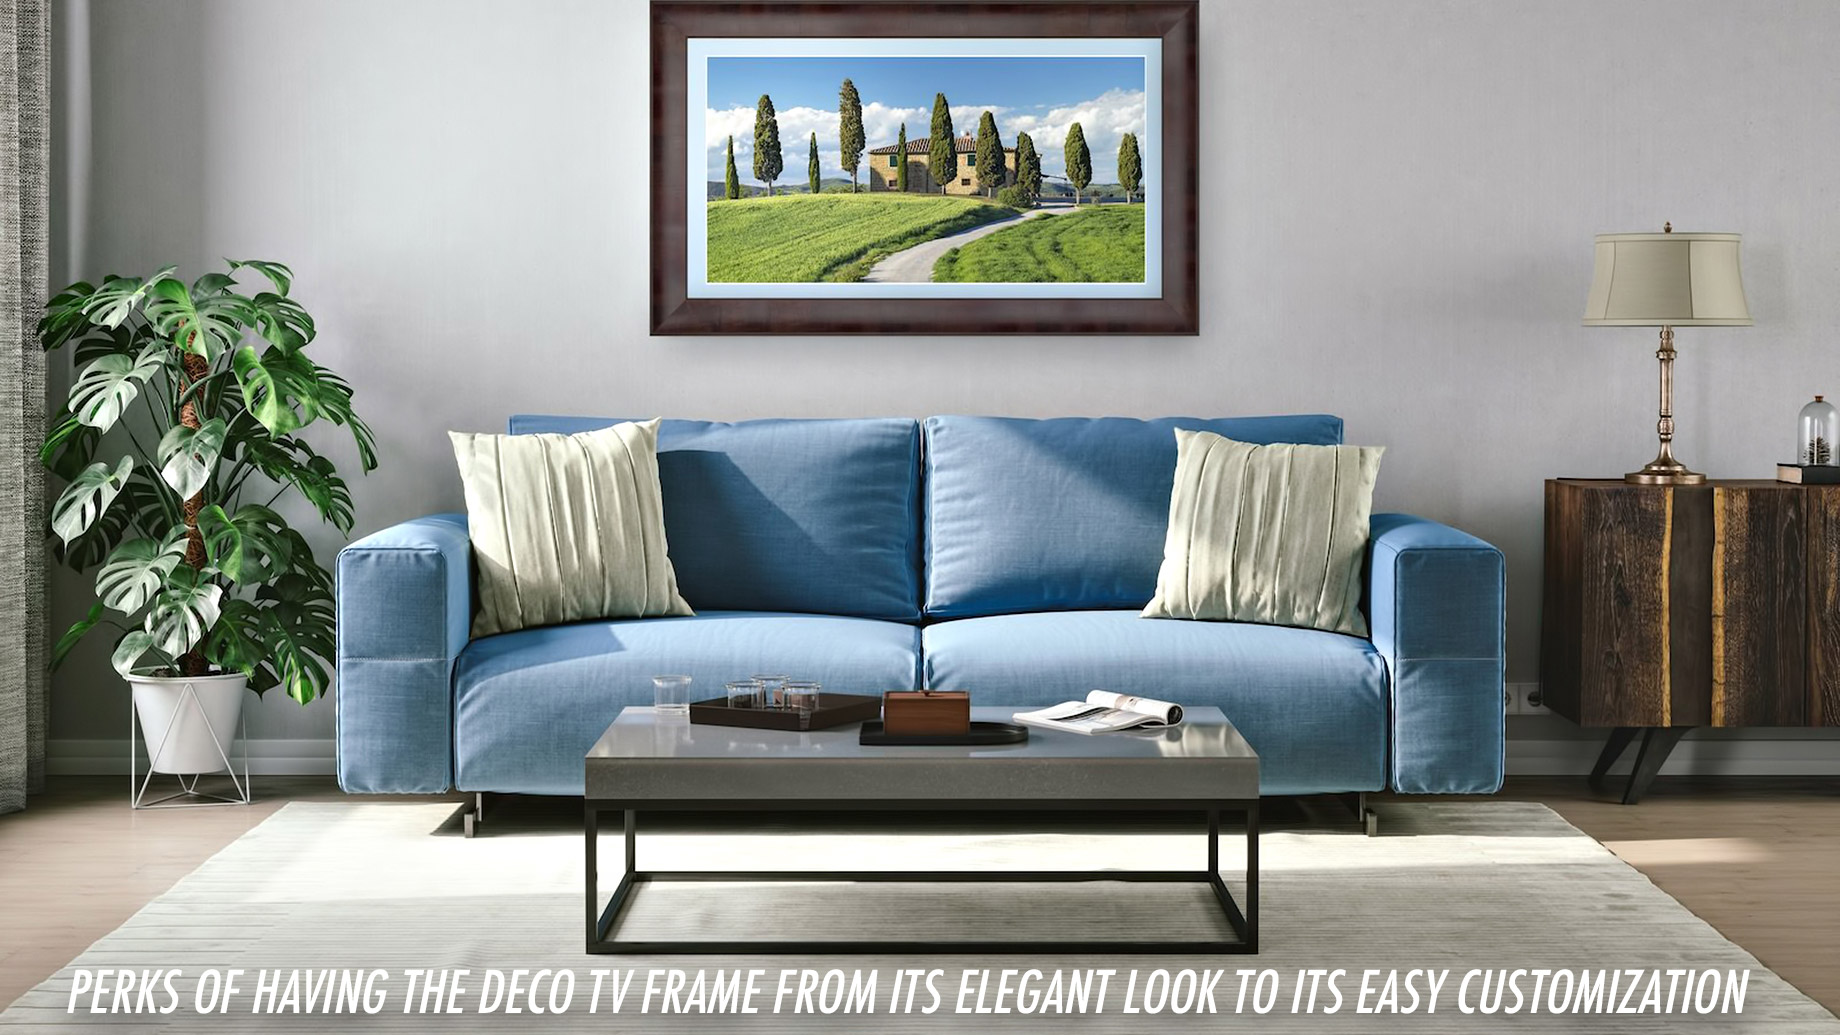 Perks of Having the Deco TV Frame from its Elegant Look to its Easy Customization